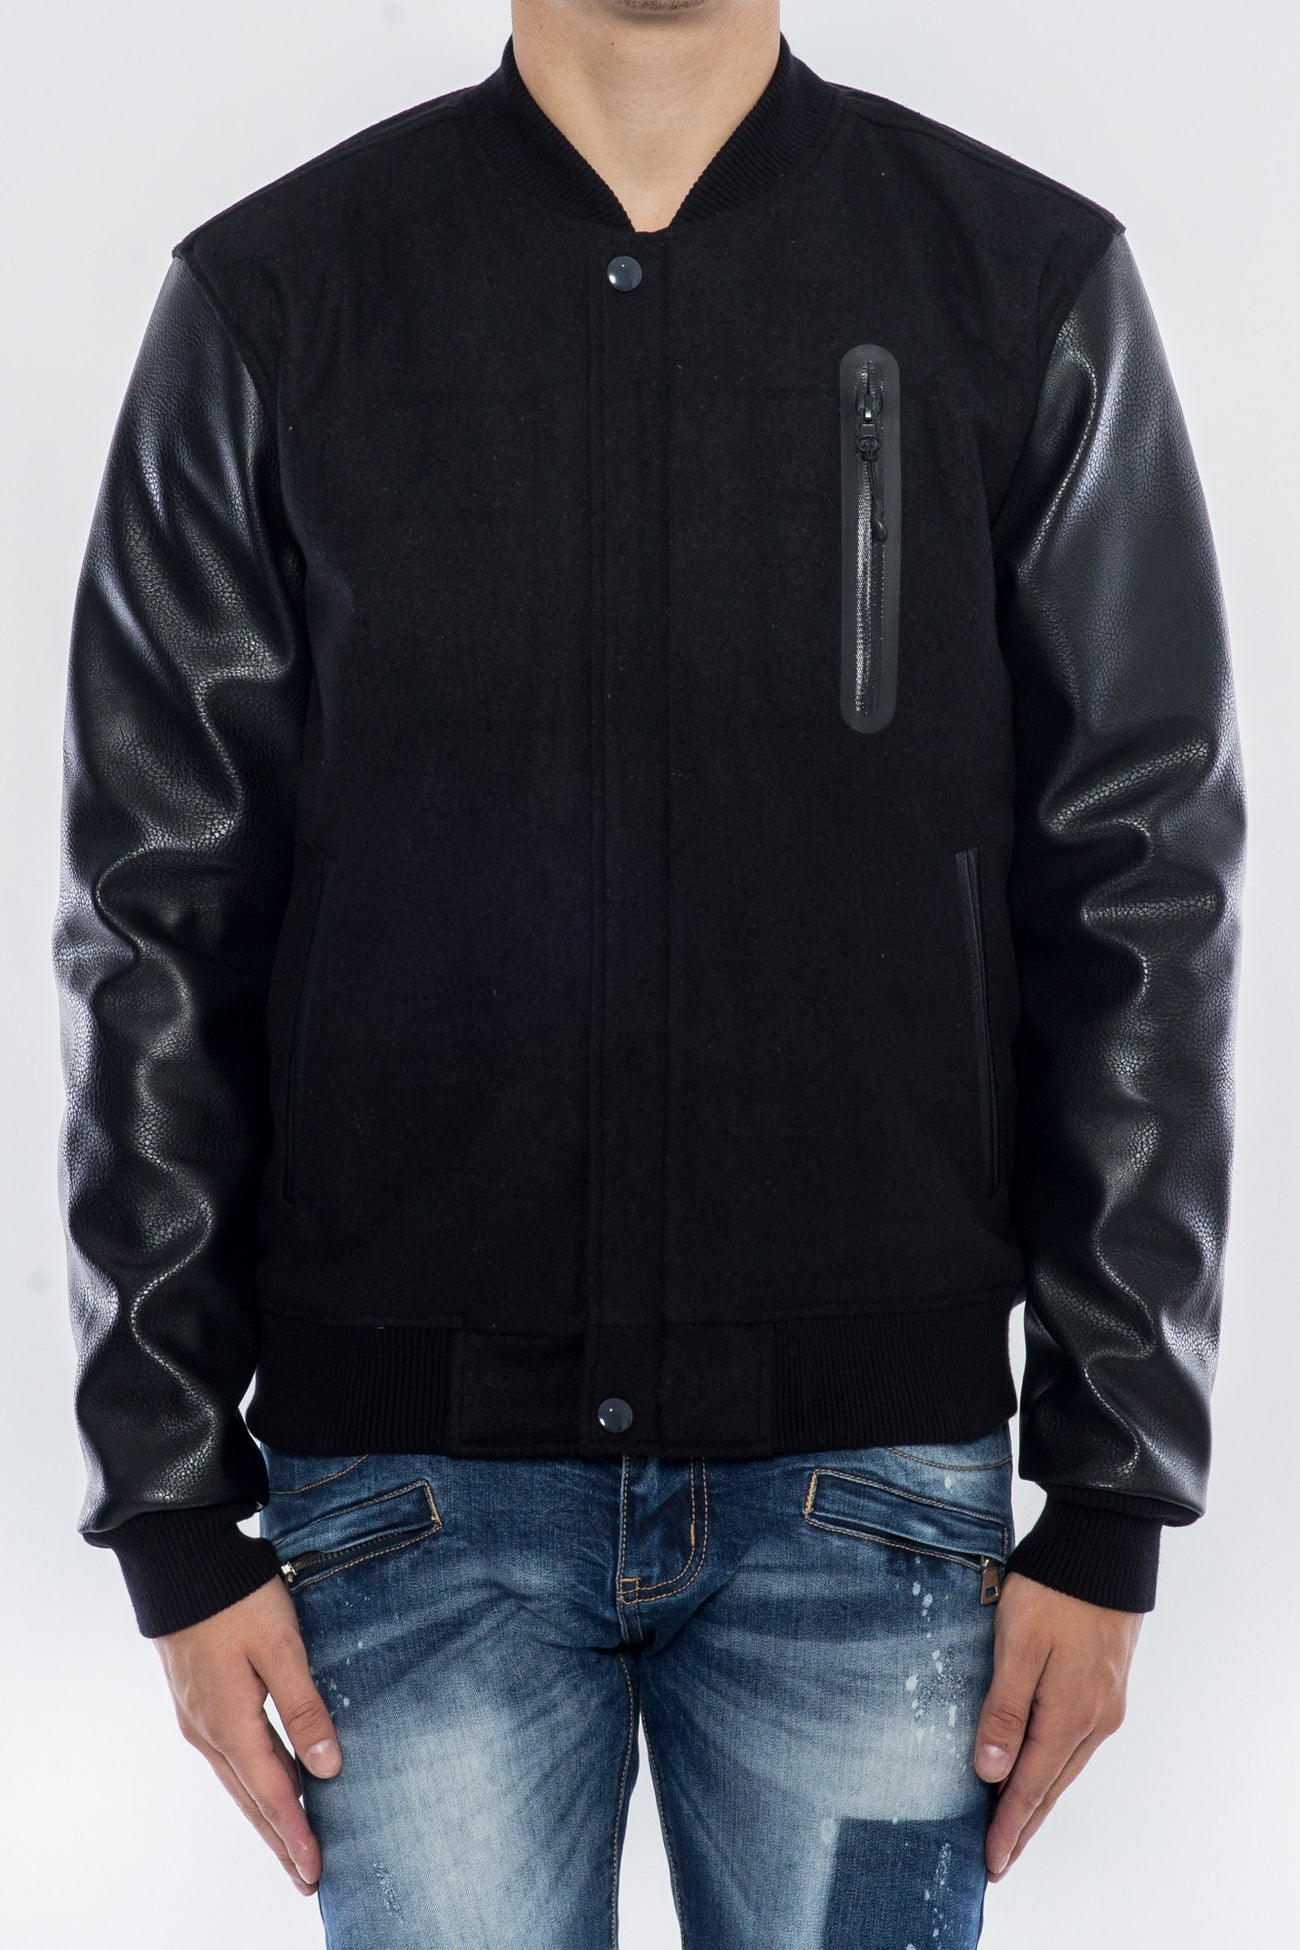 SEARCH AND DESTROY BOMBER BLACK VARSITY JACKET H6051112-BLK - cosign1975